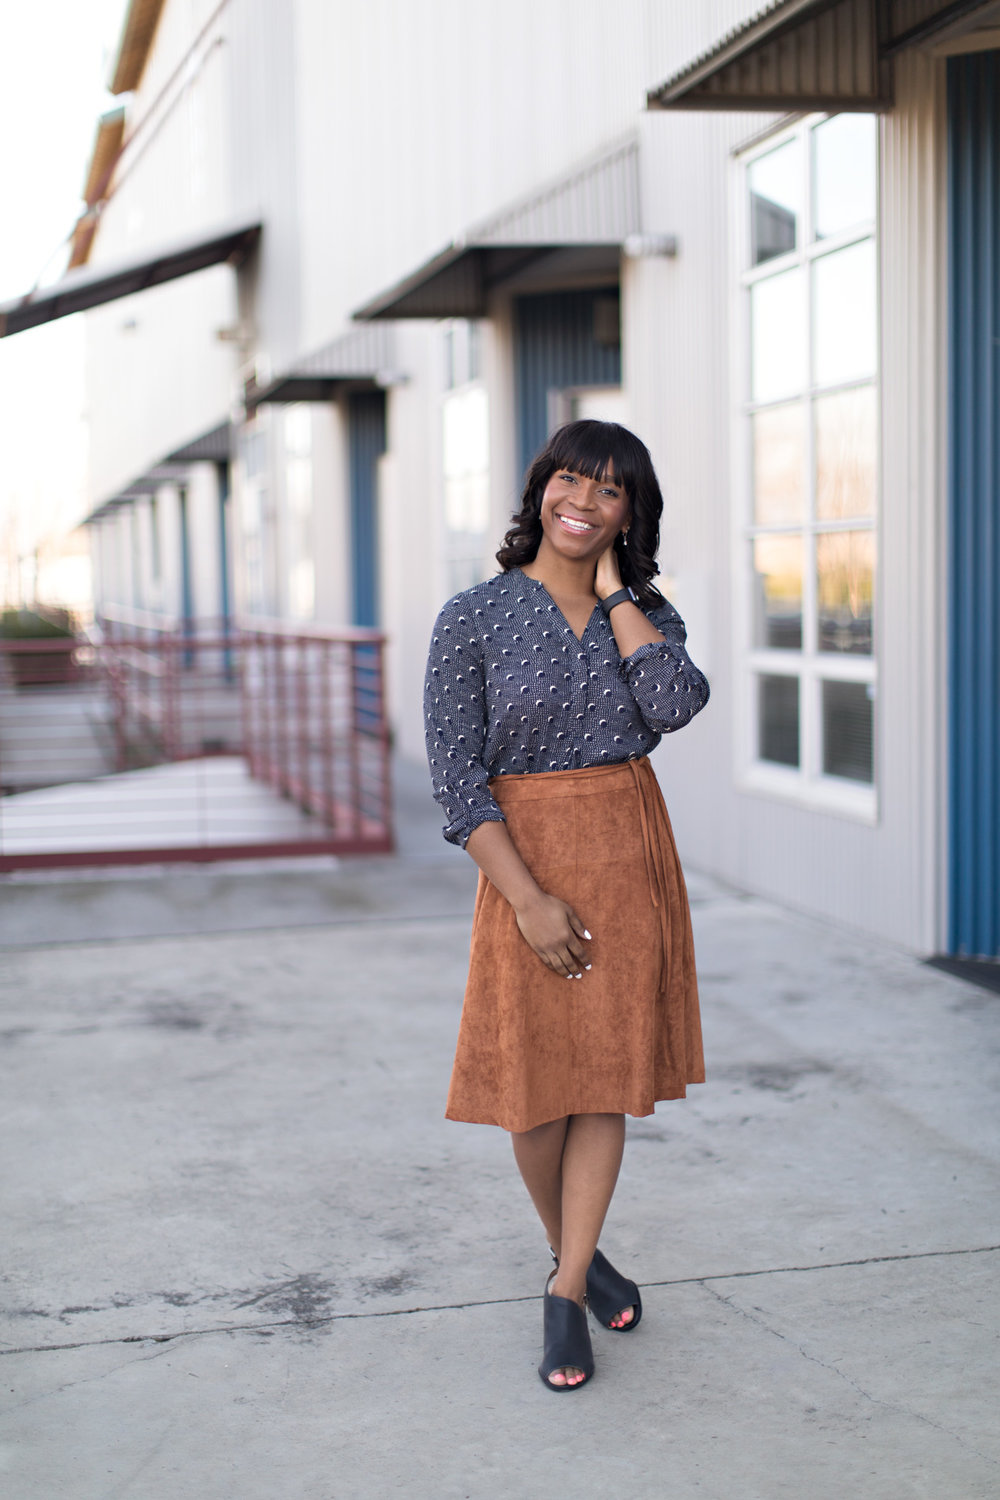 sharon hadden wearing navy patterned button up blouse and cognac knee length skirt with peep toe booties in glowing makeup by kim baker beauty san jose california makeup artist